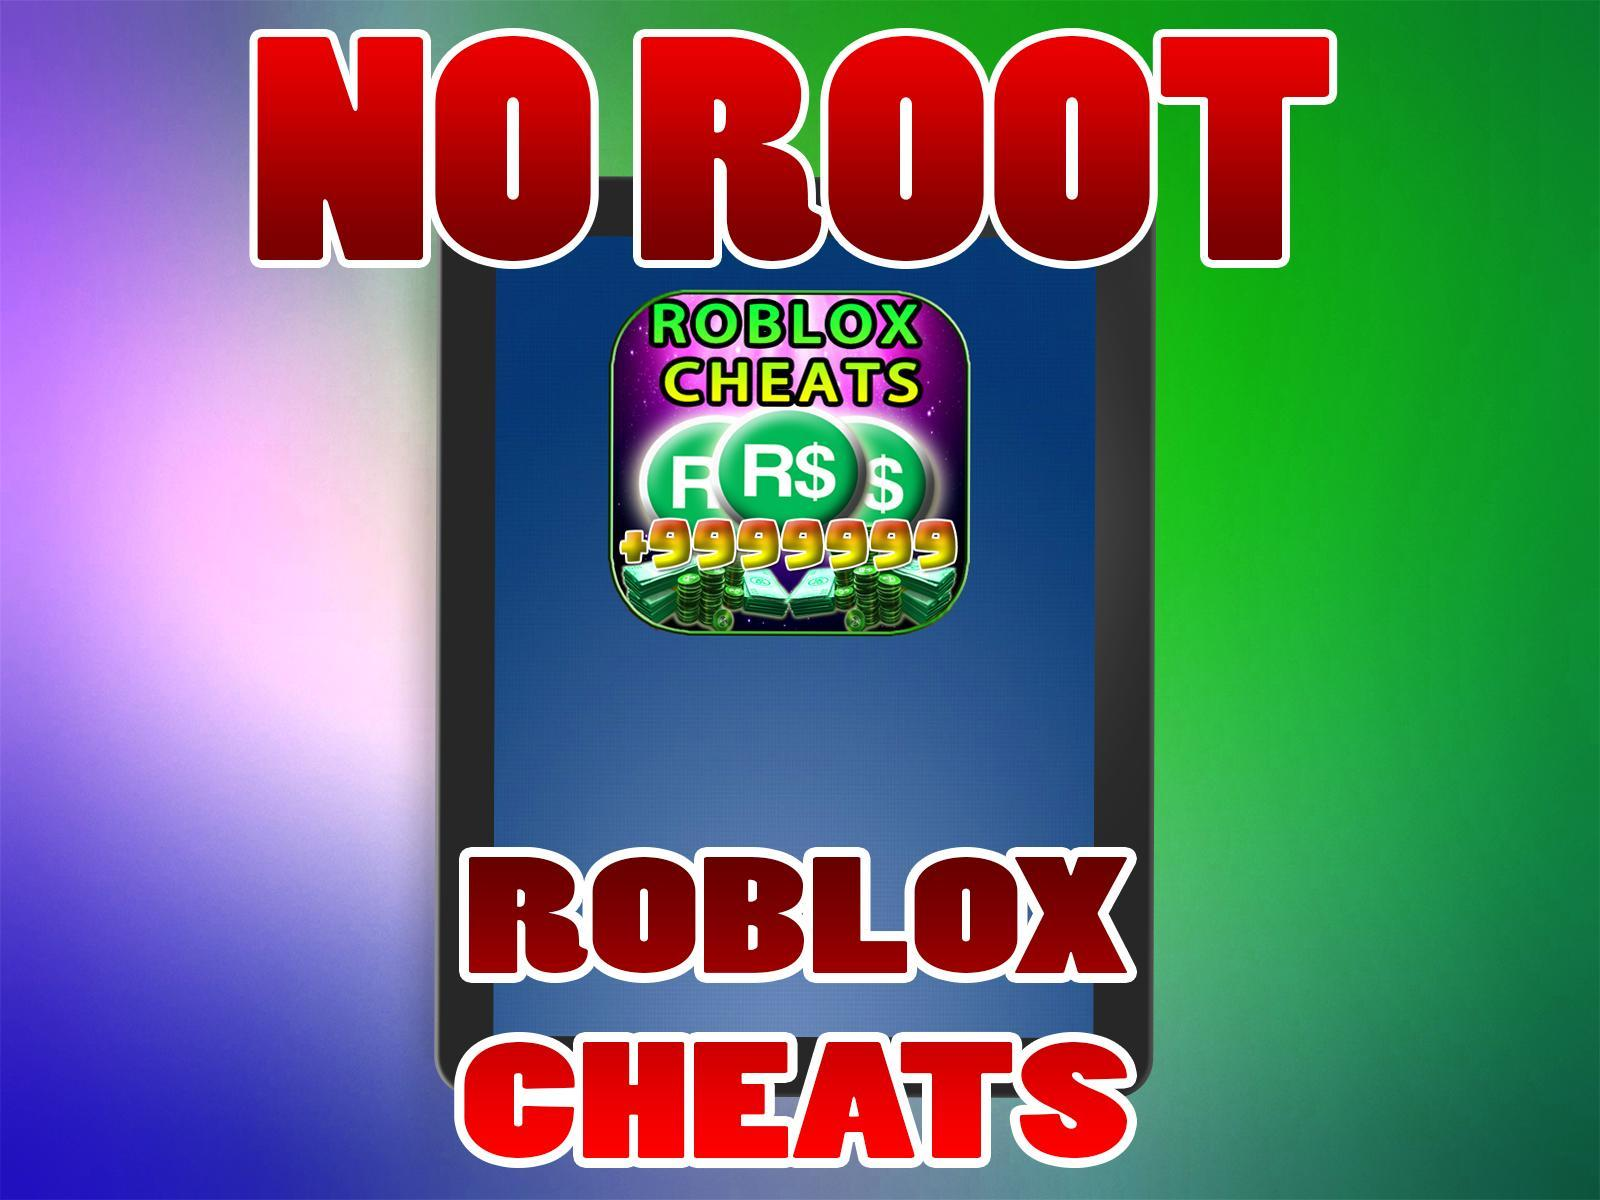 No Root Robux For Roblox prank for Android - APK Download